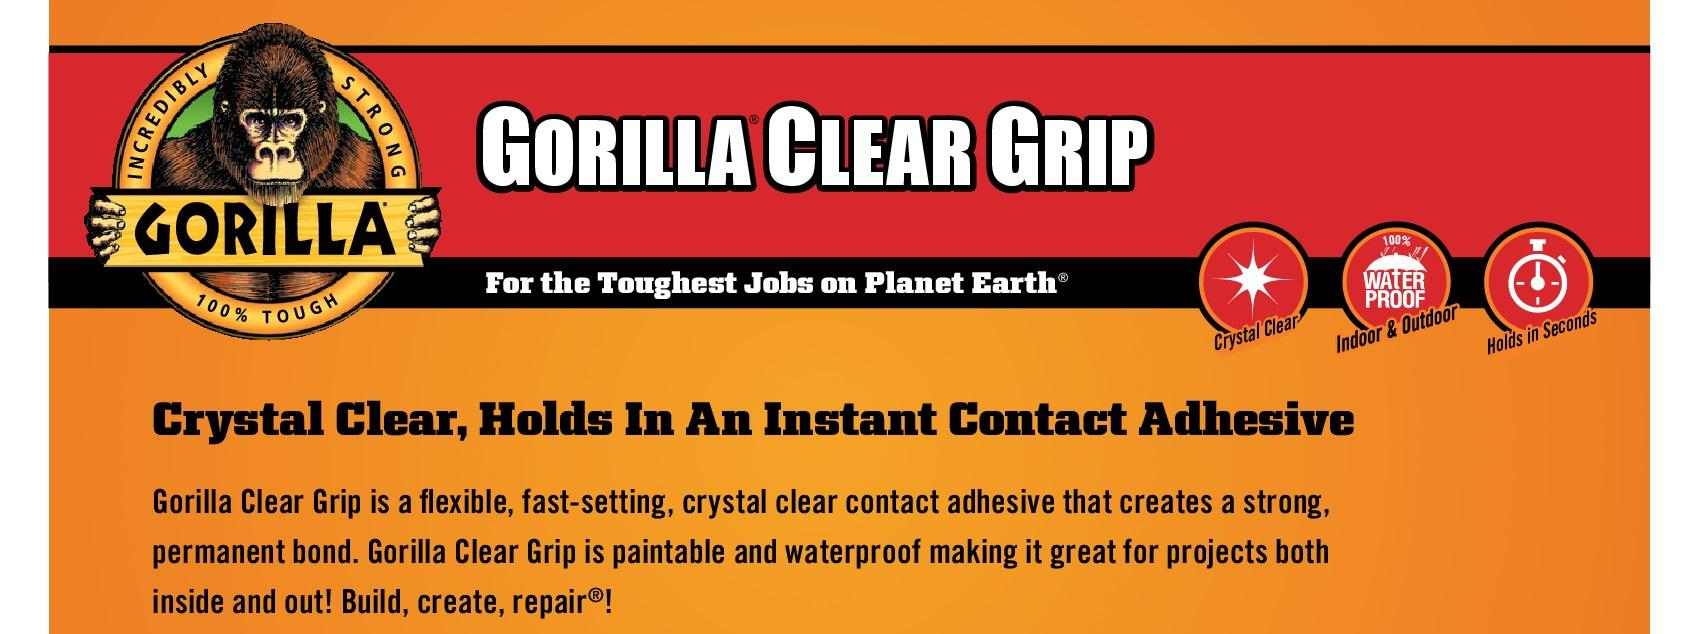 Gorilla Clear Grip Contact Adhesive, Waterproof, 3 ounce, Clear, (Pack of 1)